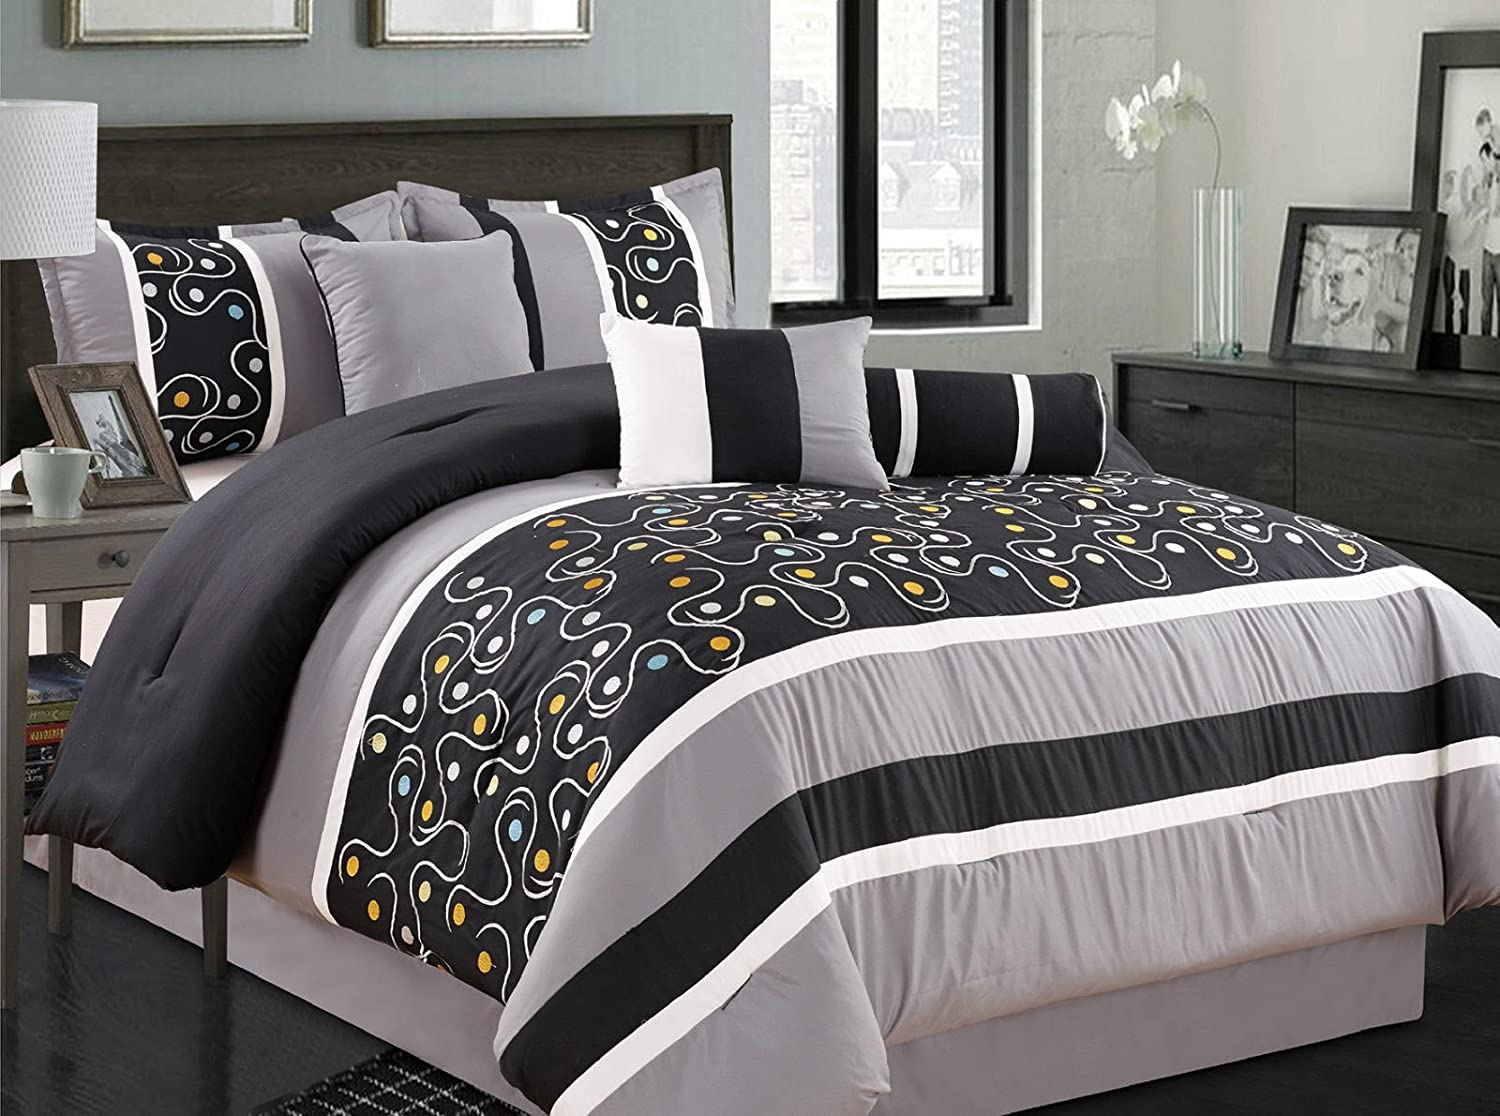 Orange And Grey Bedding Sets With More